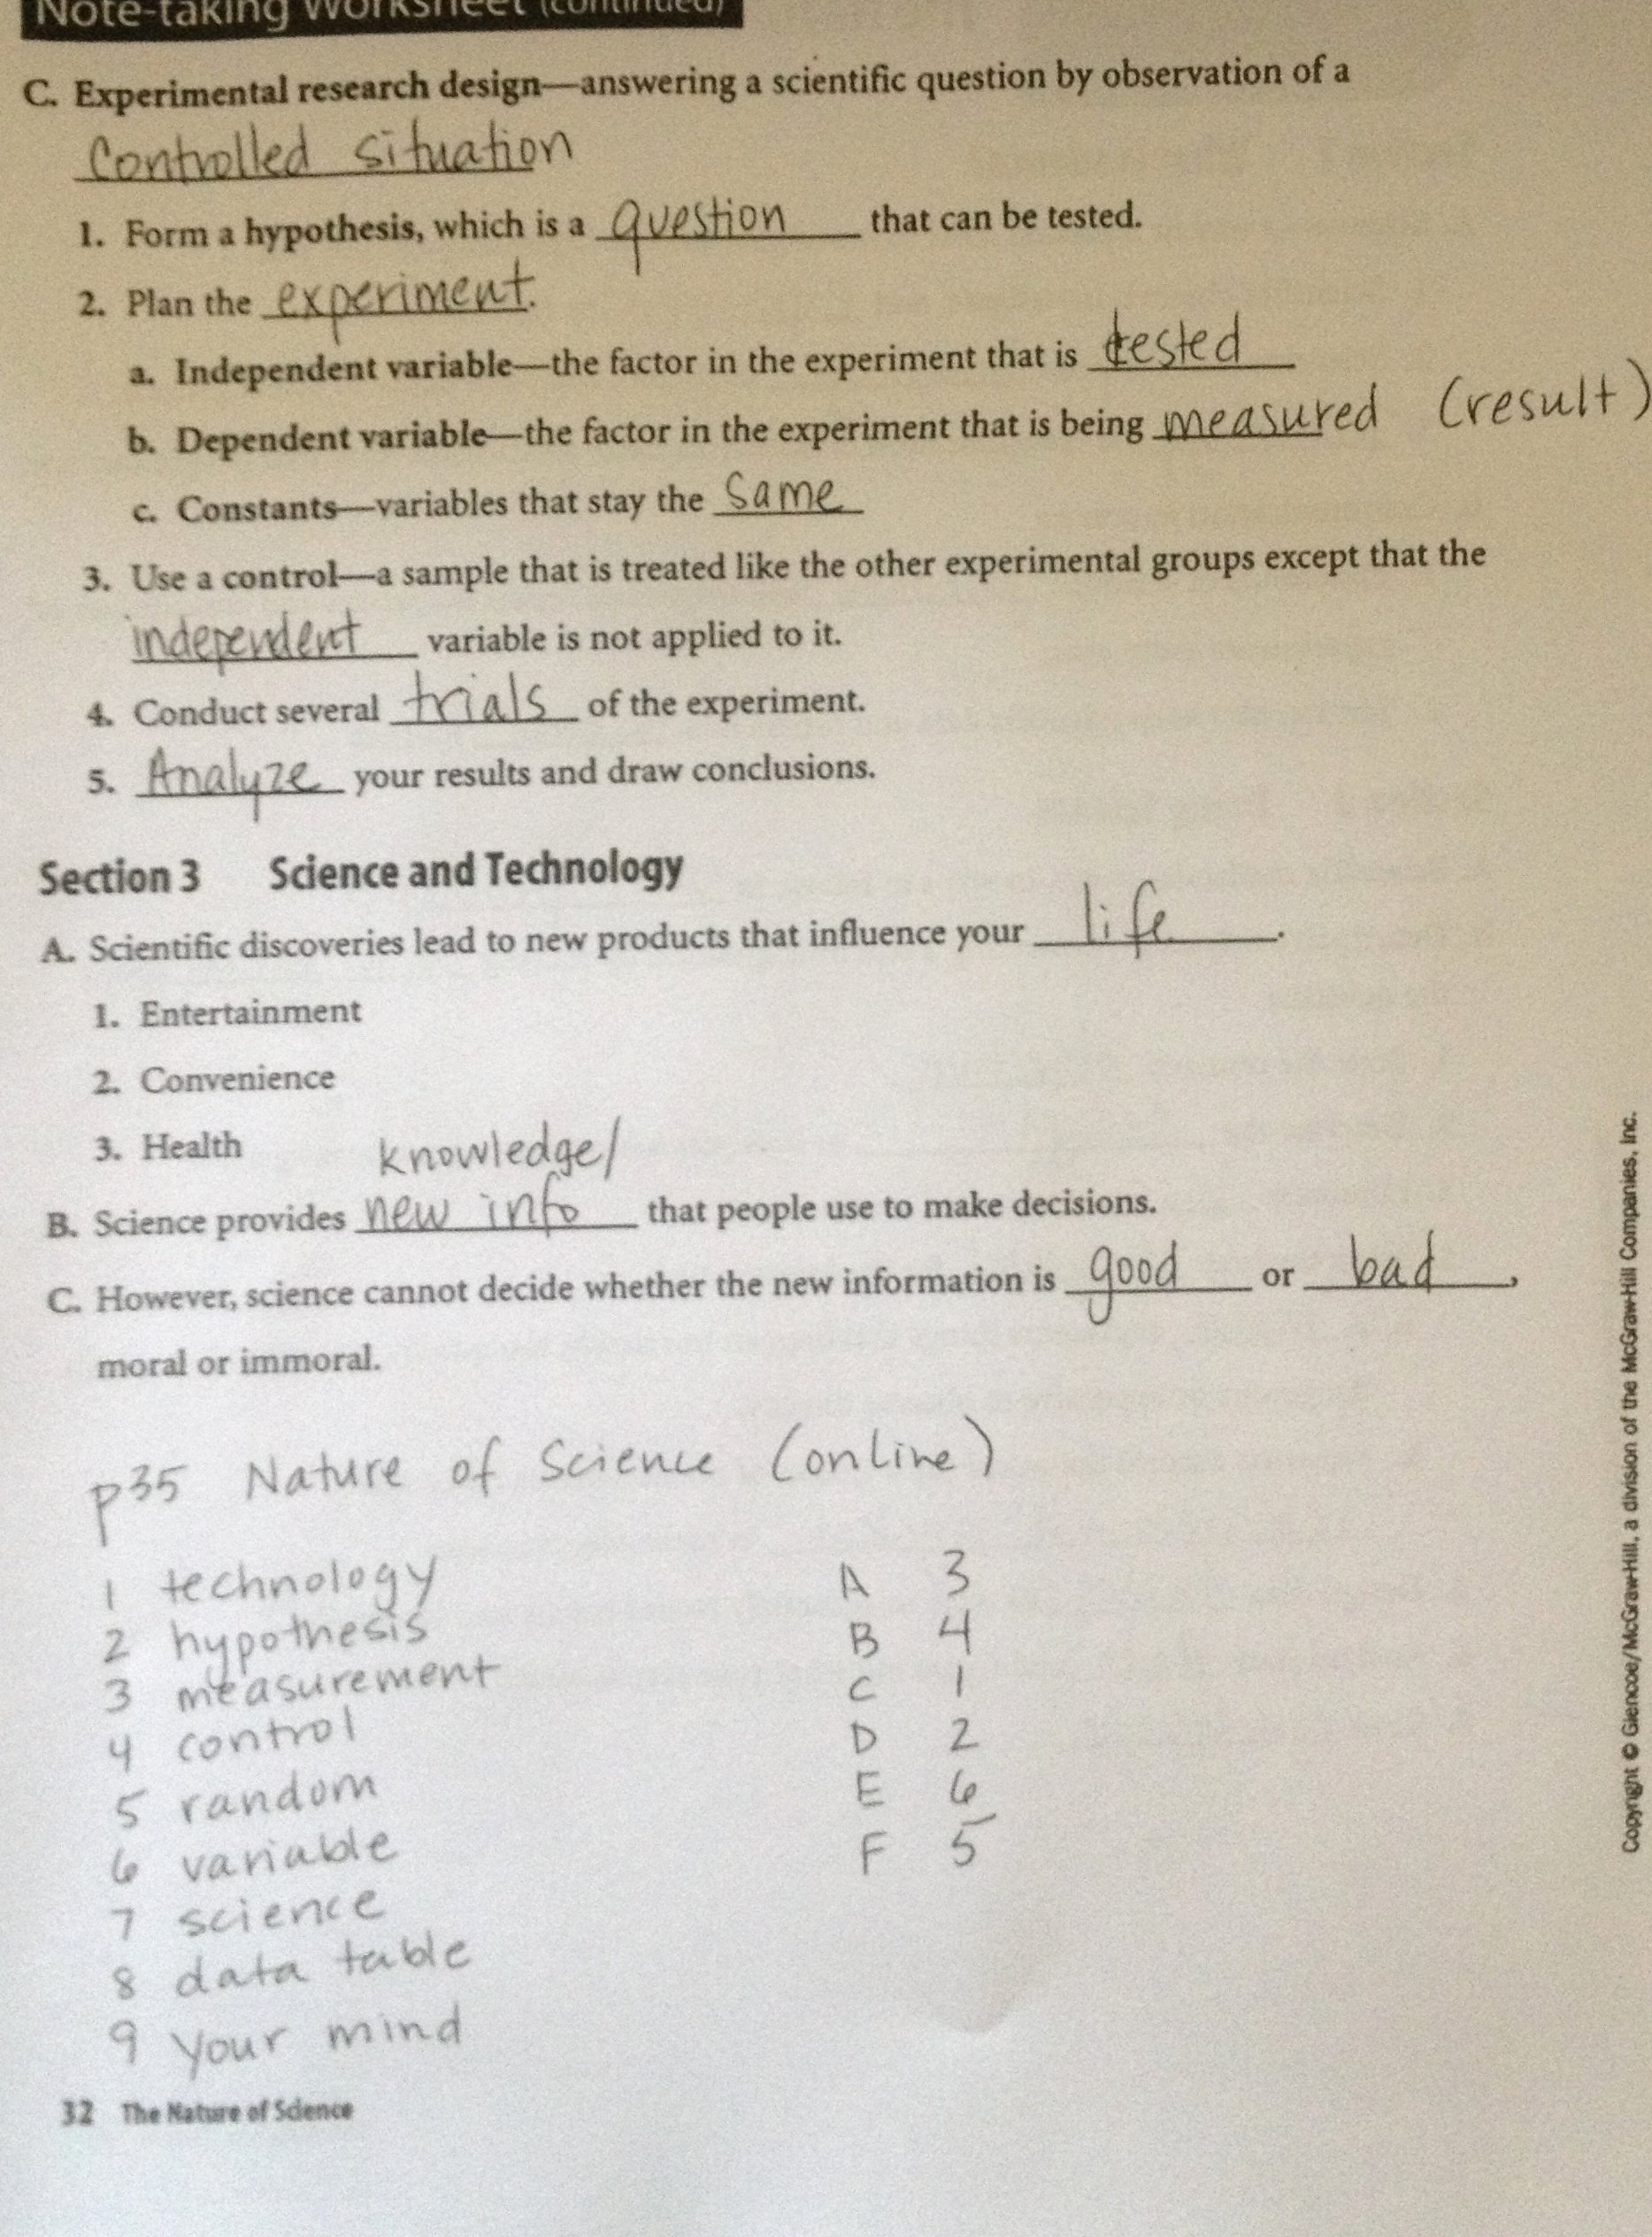 Nova Hunting the Elements Worksheet Luxury Note Taking Worksheet Glencoe Science Cell Note Best